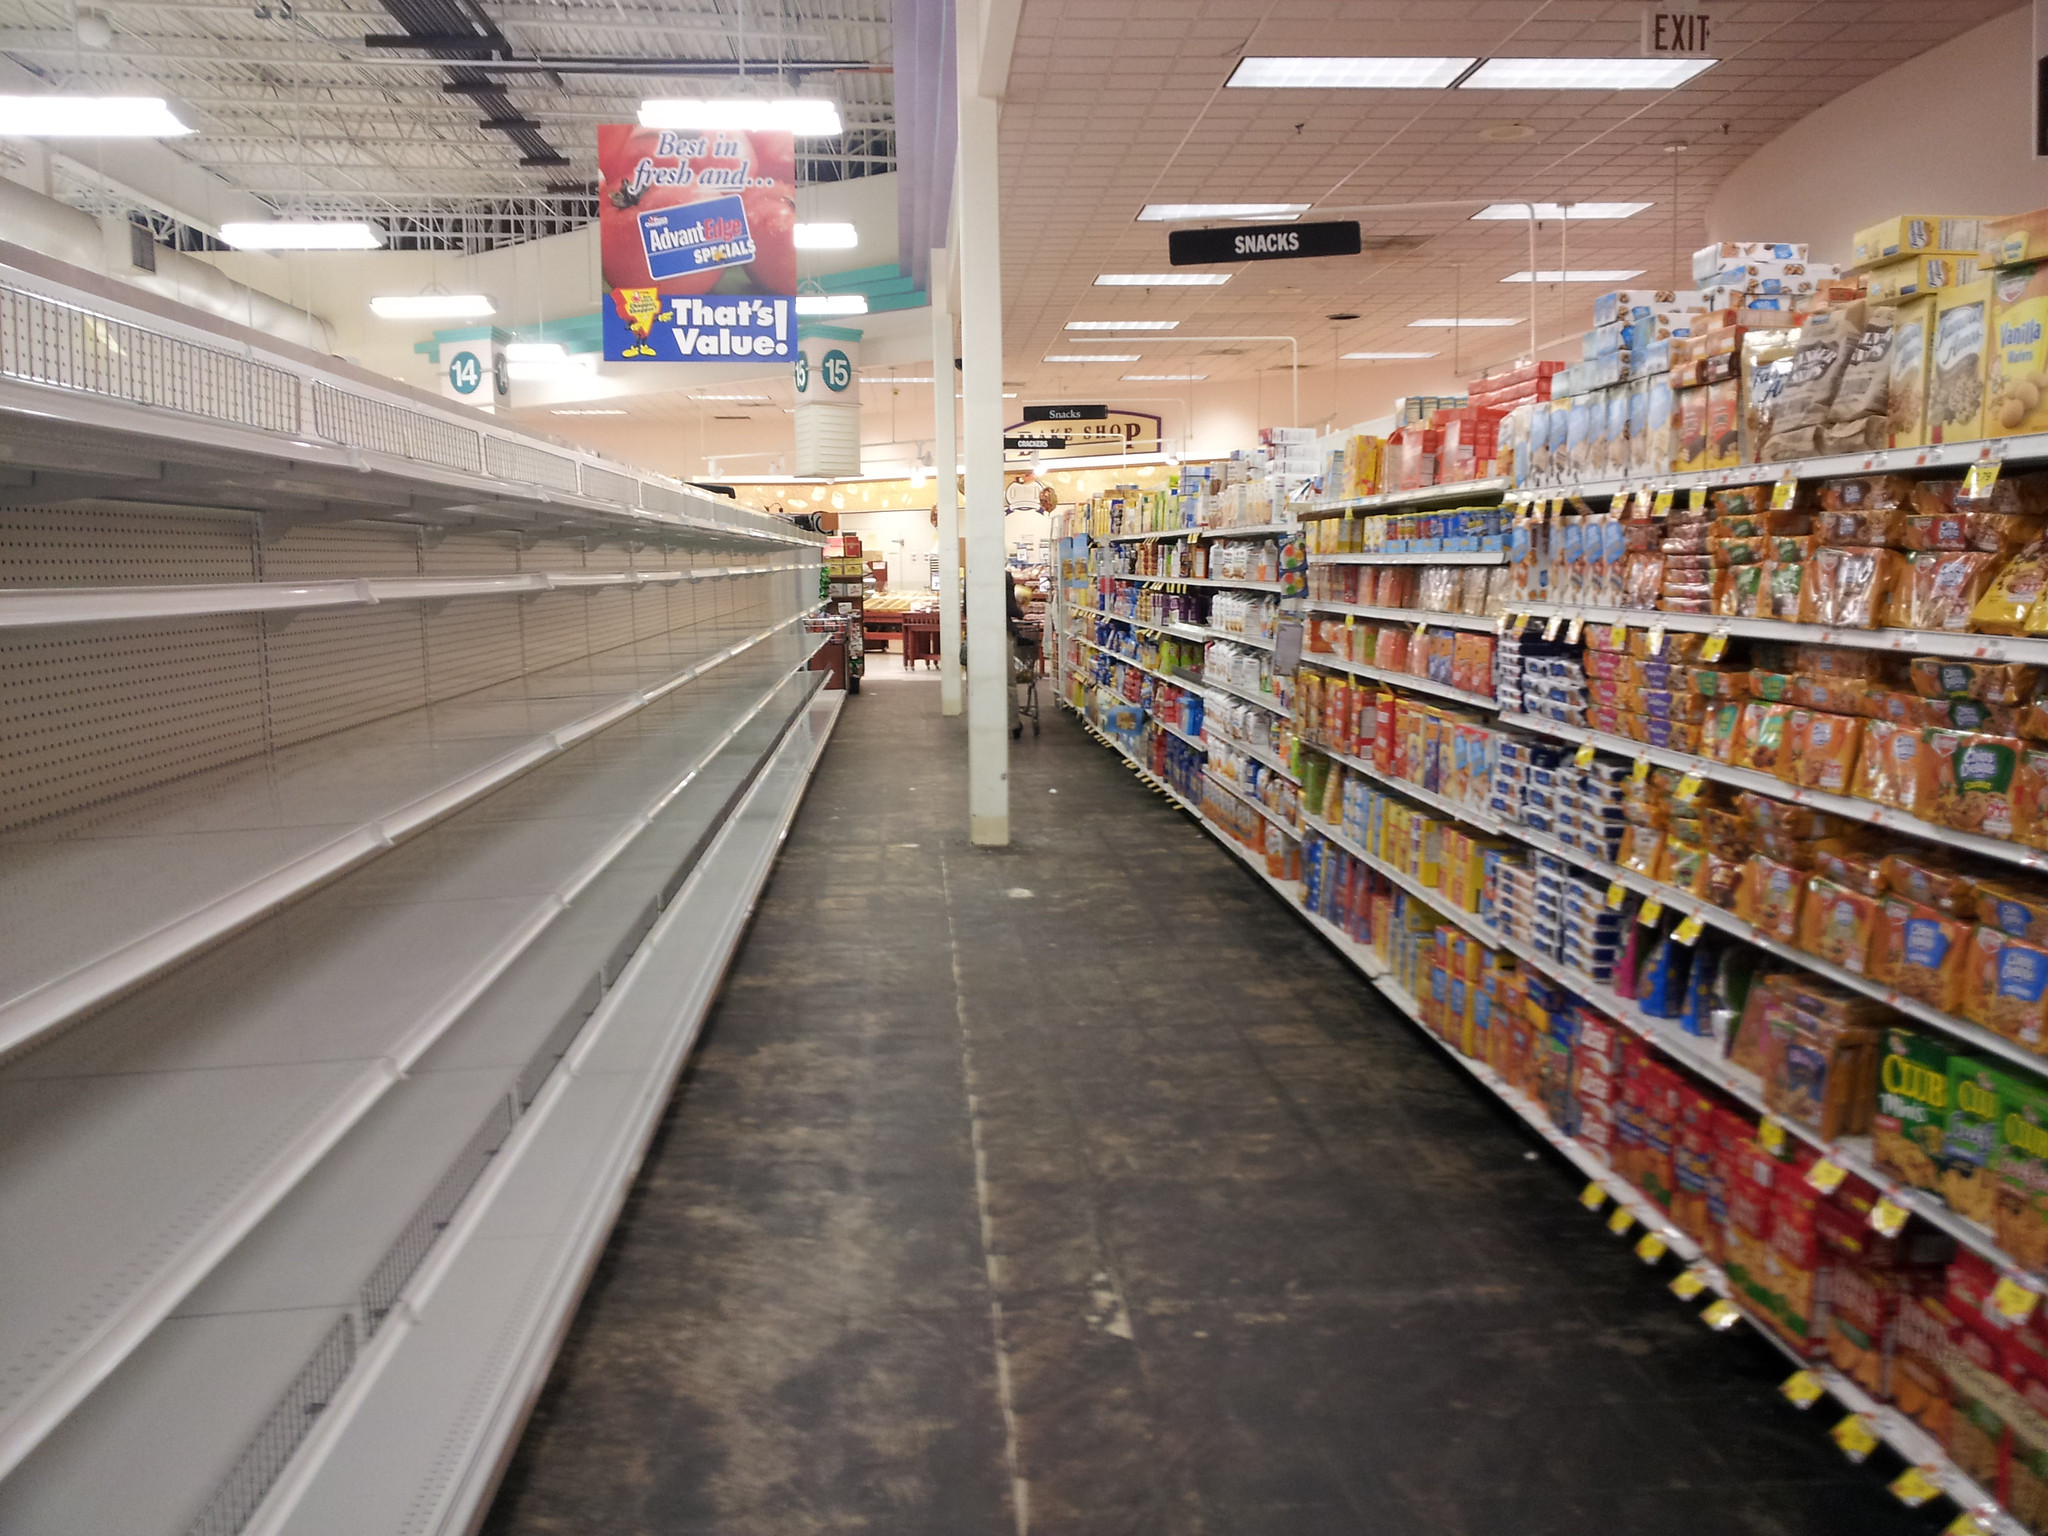 Here is why grocery store shelves are empty